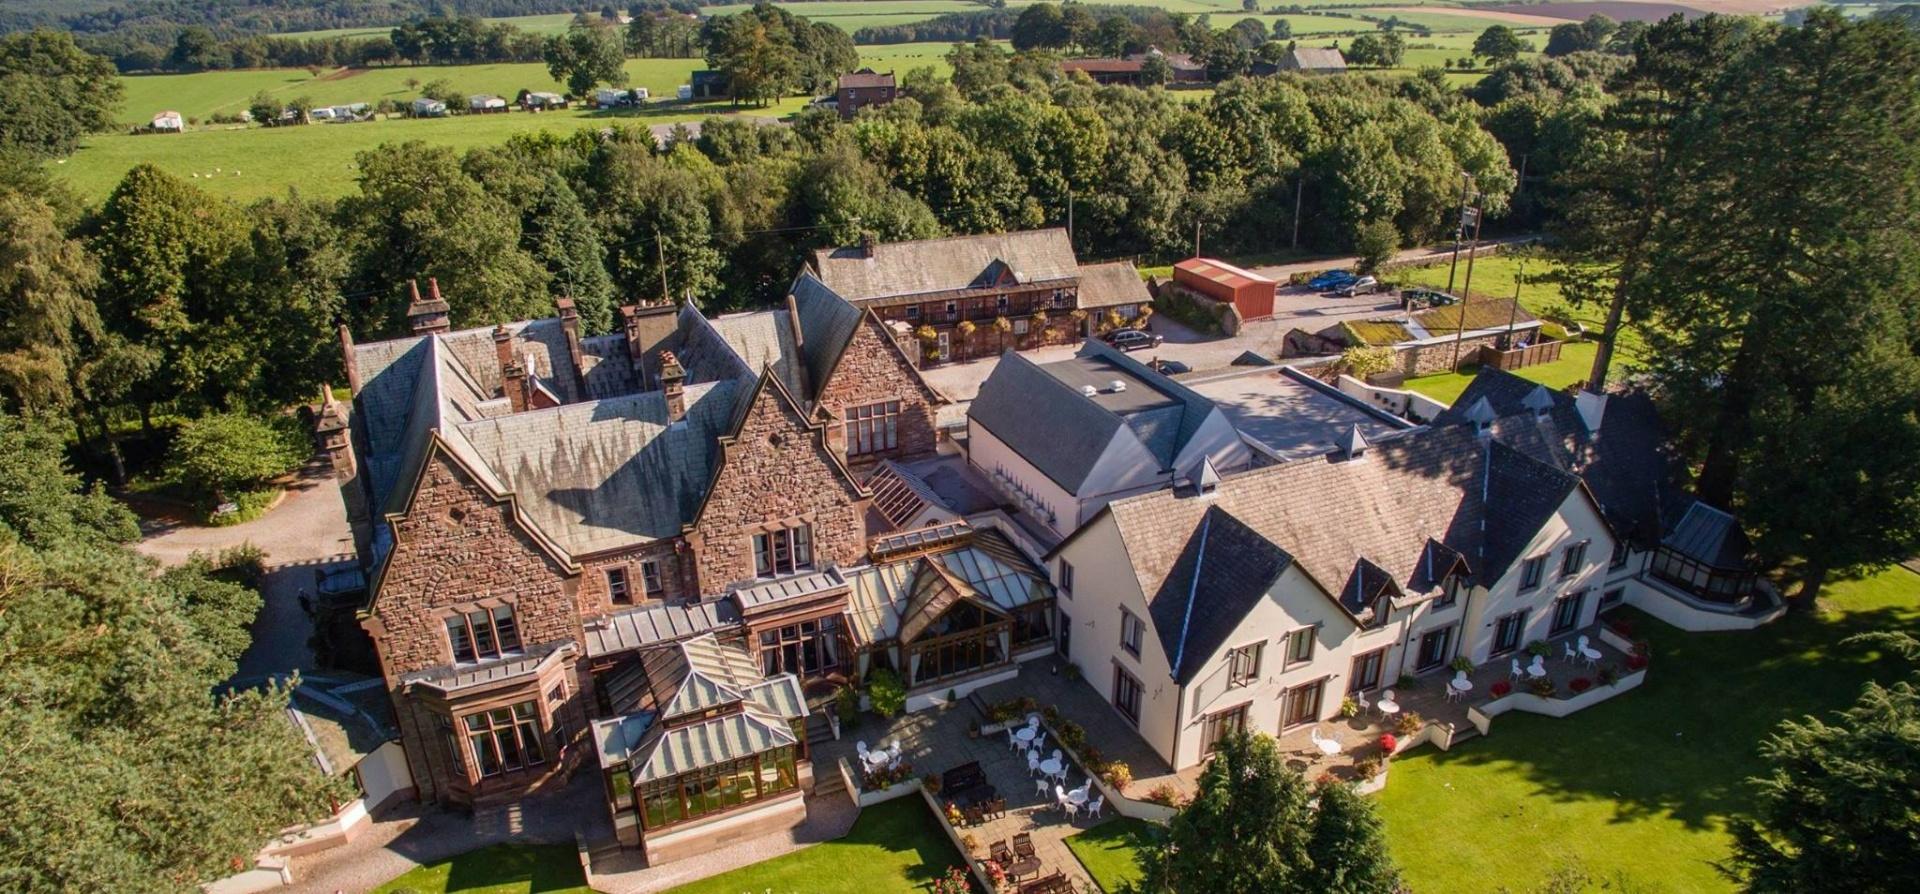 Spa Break and Treament For Two - Cumbria-2